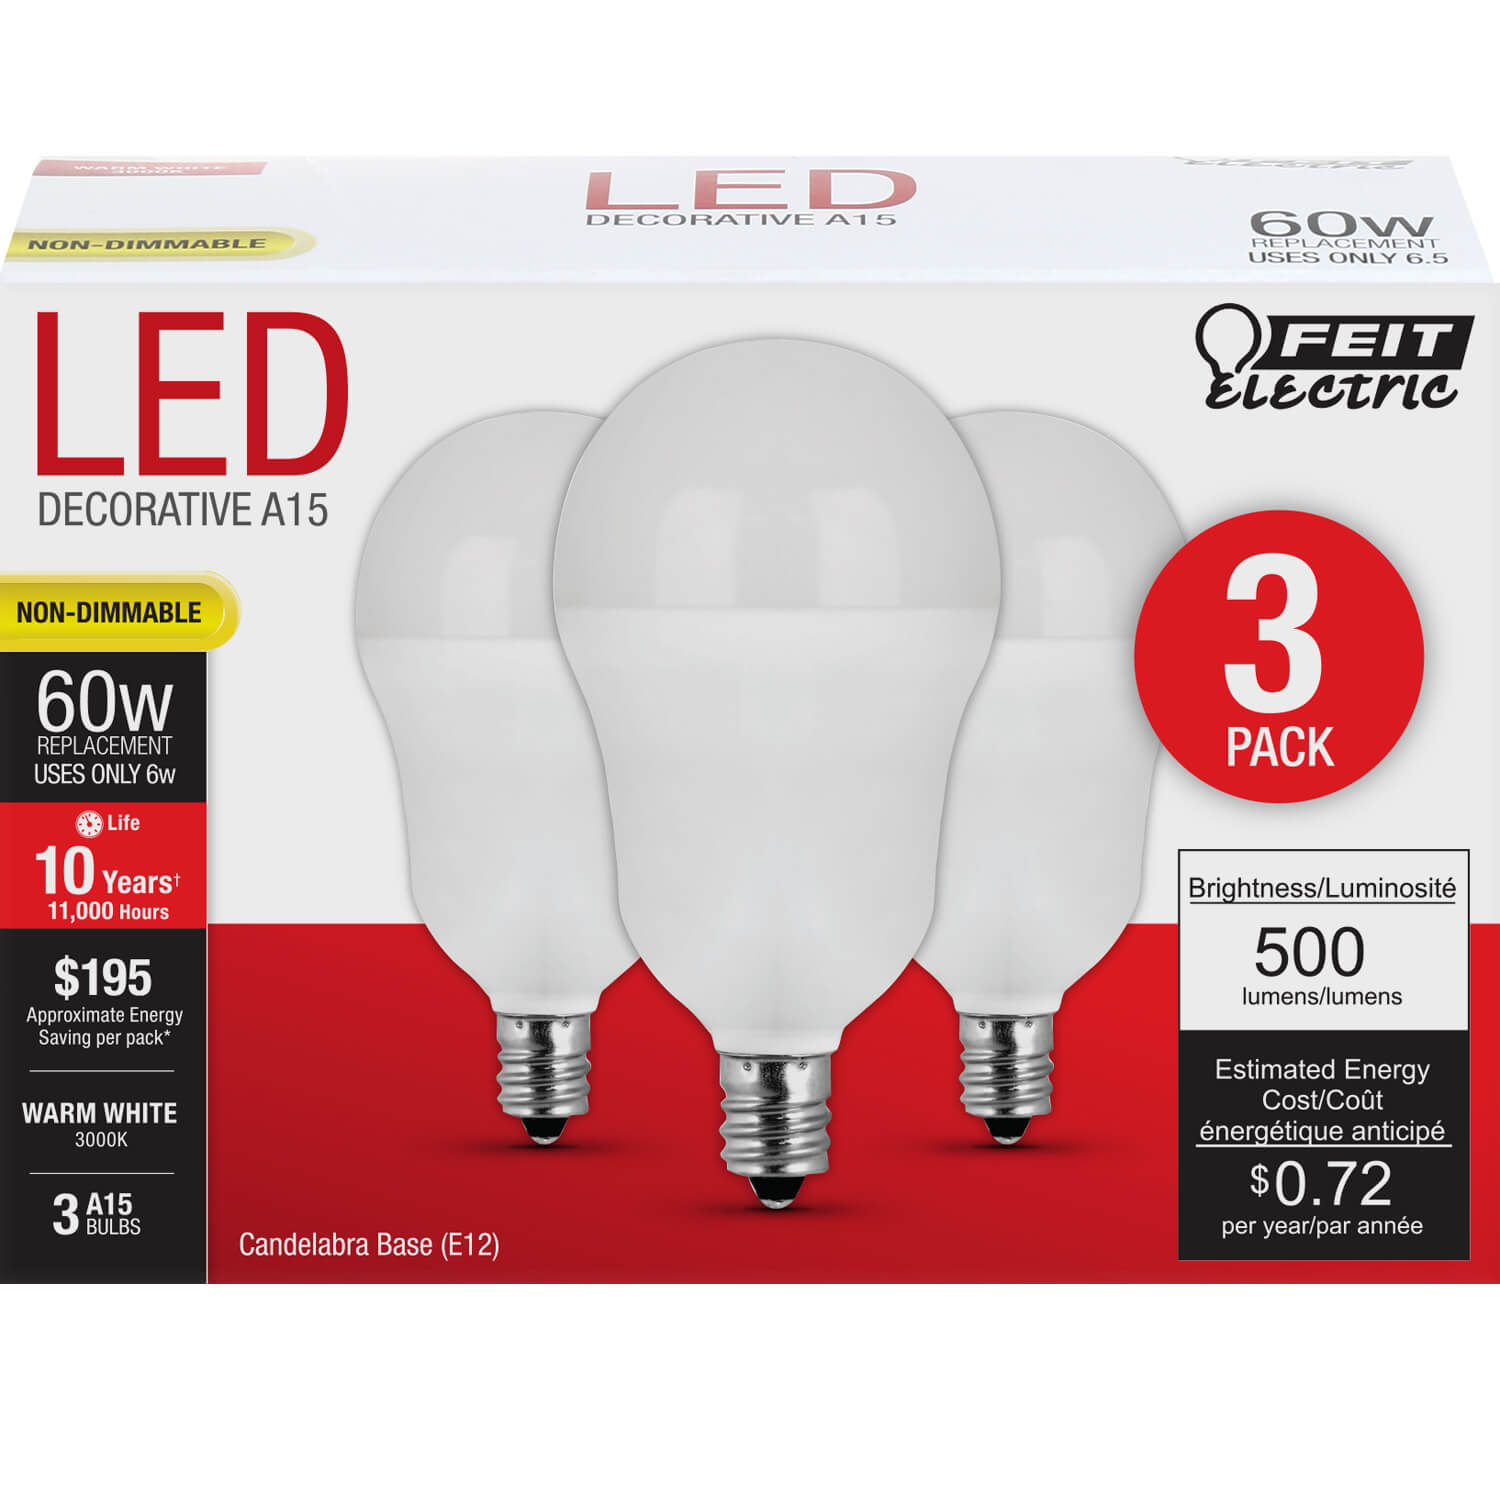 500 Lumen 3000k Dimmable Led: 500 Lumen 3000K Non-Dimmable A15 LED